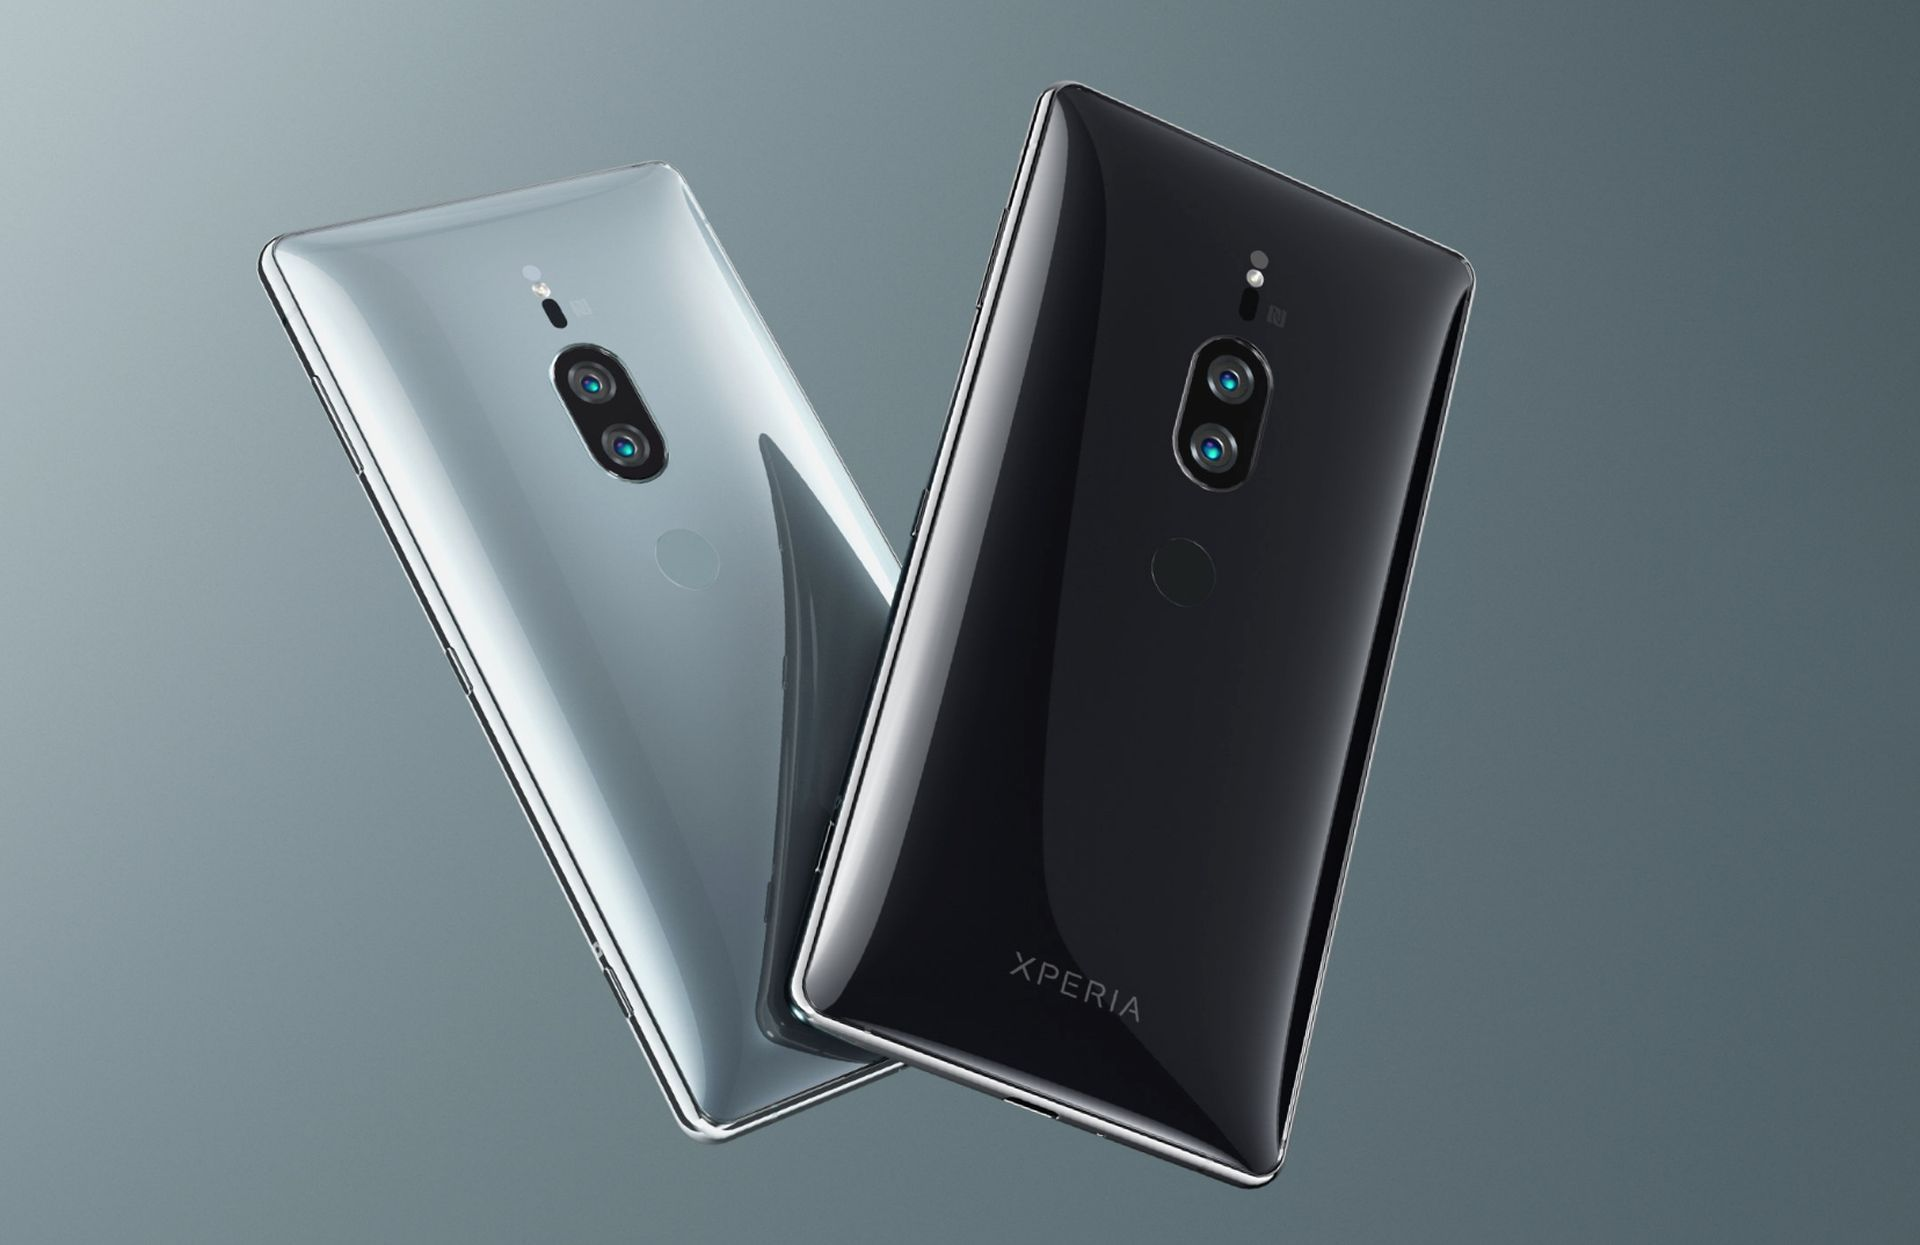 Sony S Xperia Xz2 Premium Has A 4k Display And Cameras Built For Extreme Low Light Shooting Sony Xperia Phone Sony